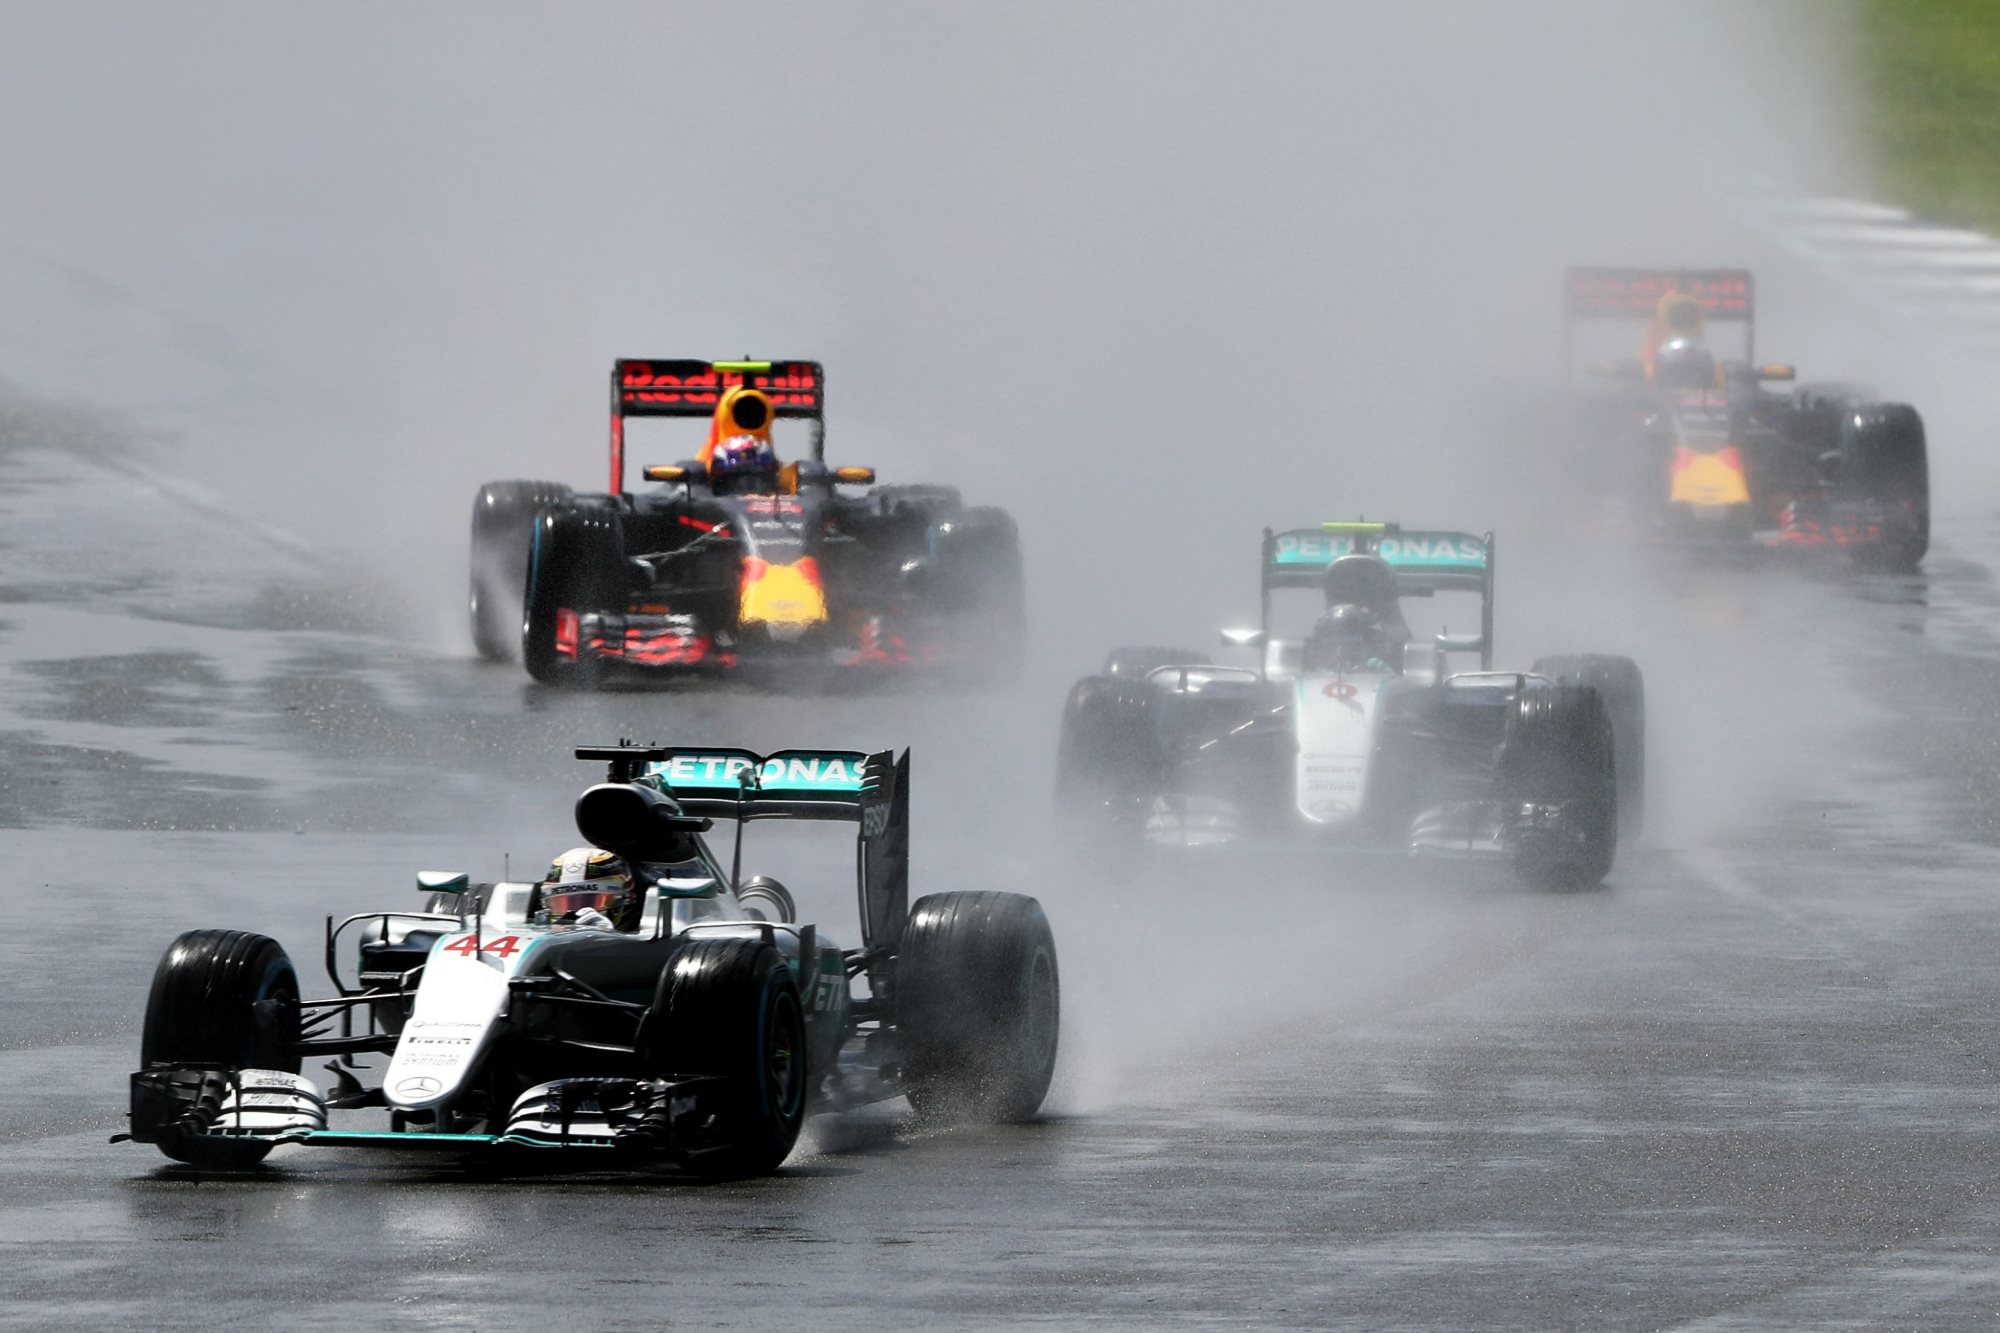 Hamilton Rosberg Verstappen Ricciardo British GP F1 2016 in the wet Foto Red Bull